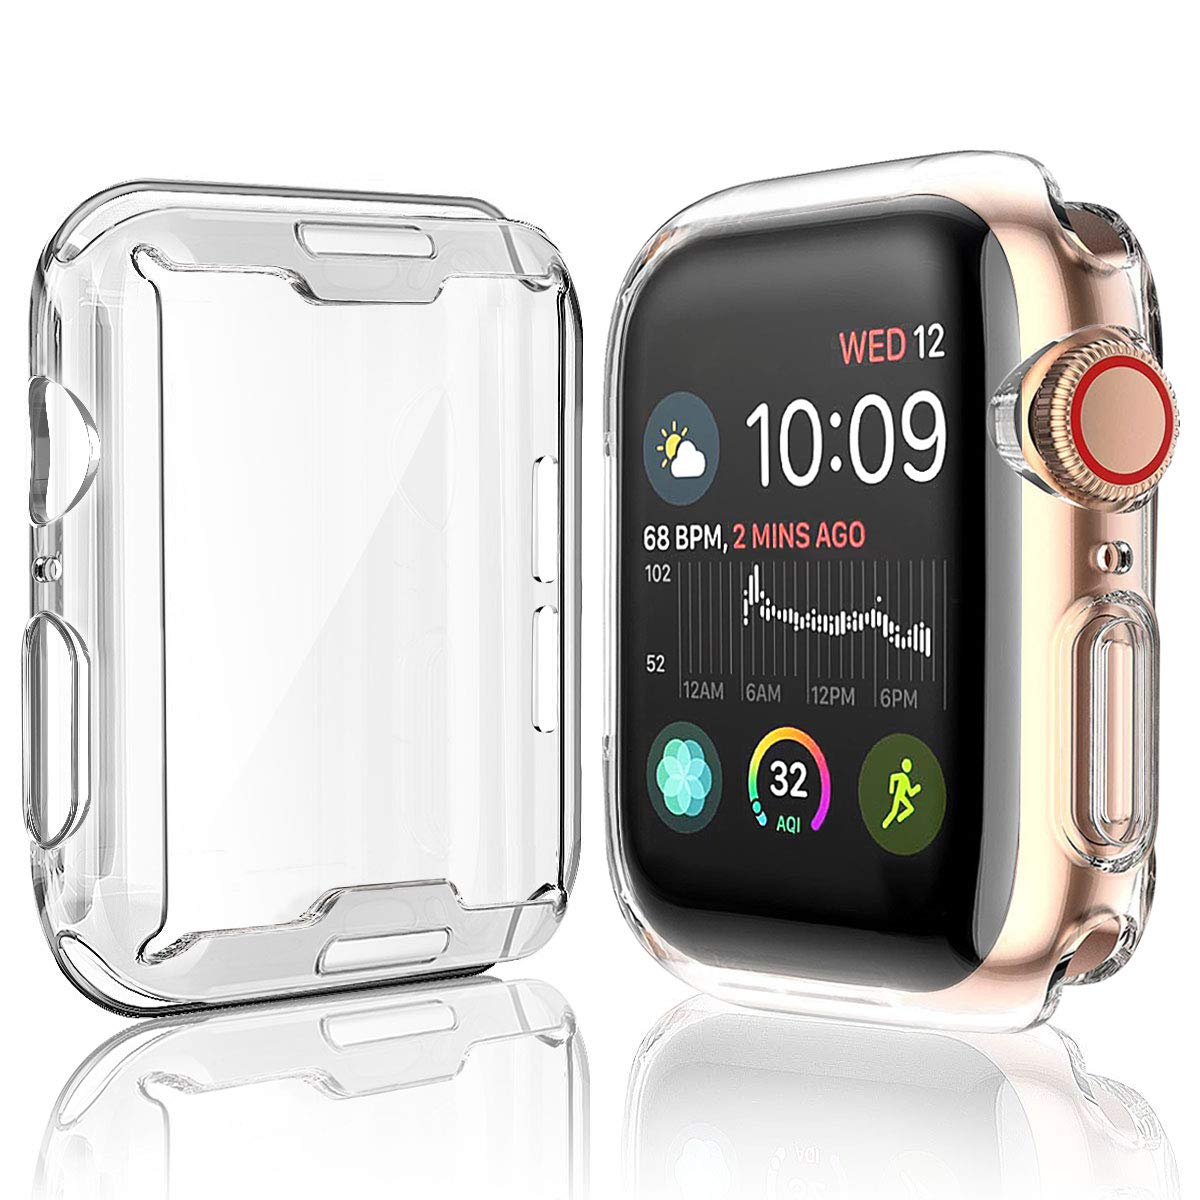 a basso prezzo abc5e 242db [2-Pack] Julk Case for Apple Watch Series 5 / Series 4 Screen Protector  40mm, 2019 New iWatch Overall Protective Case TPU HD Clear Ultra-Thin Cover  ...